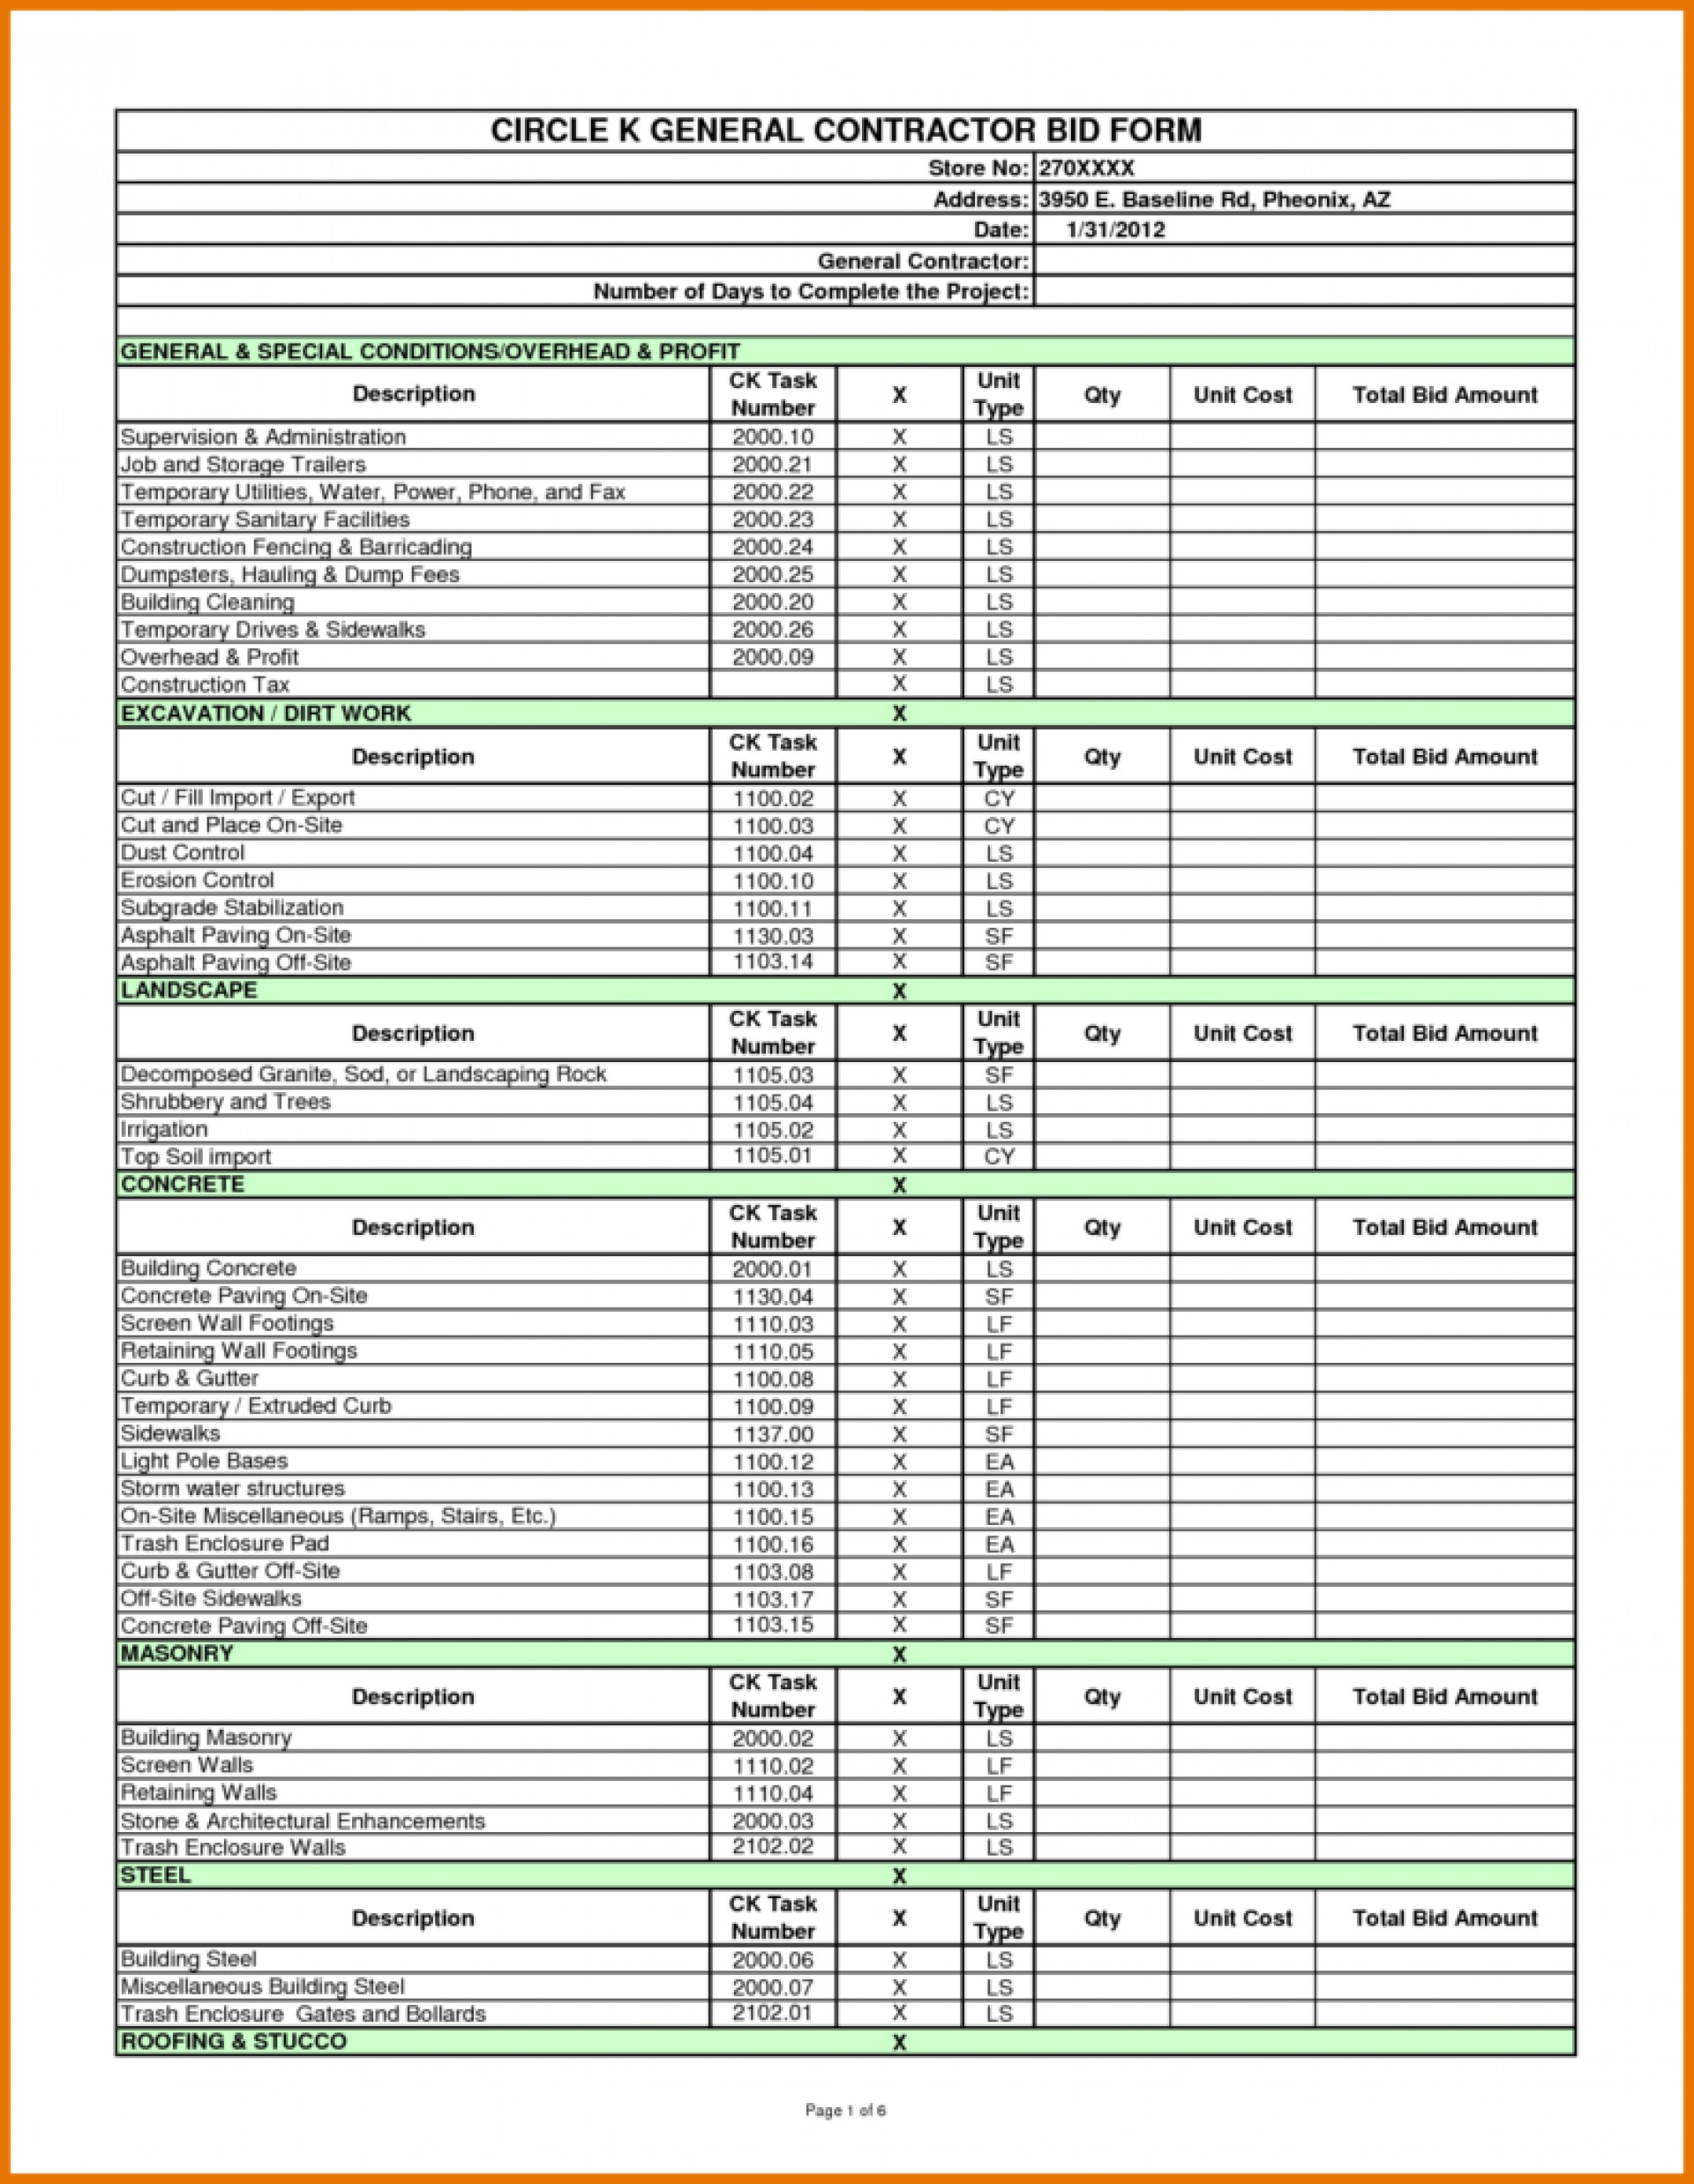 Bid Spreadsheet Throughout 009 Template Ideas Construction Bid Sheet With Spreadsheet Plus